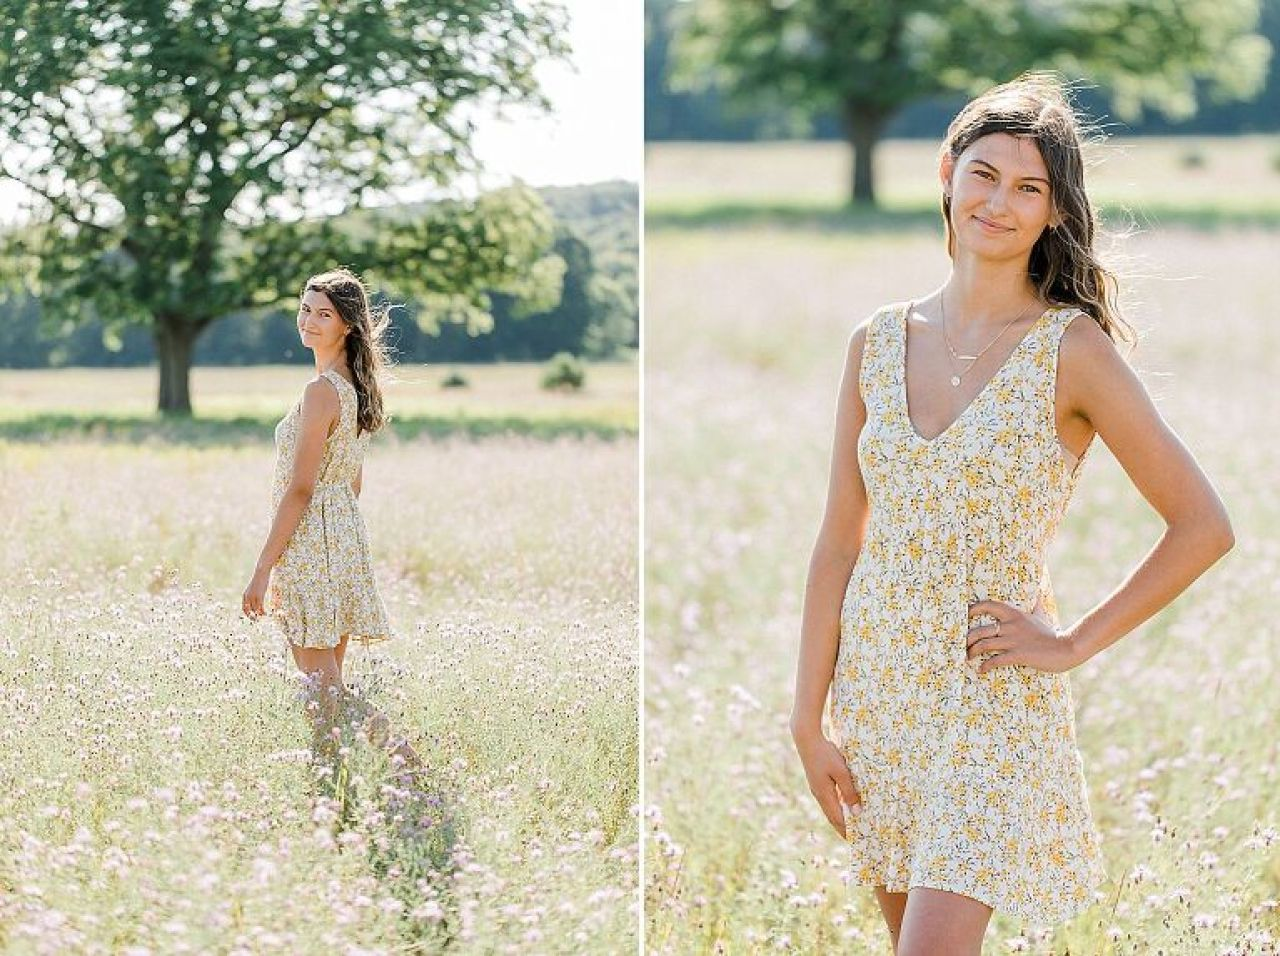 A girl's senior portrait session on a sunny evening in a field in Northern Michigan